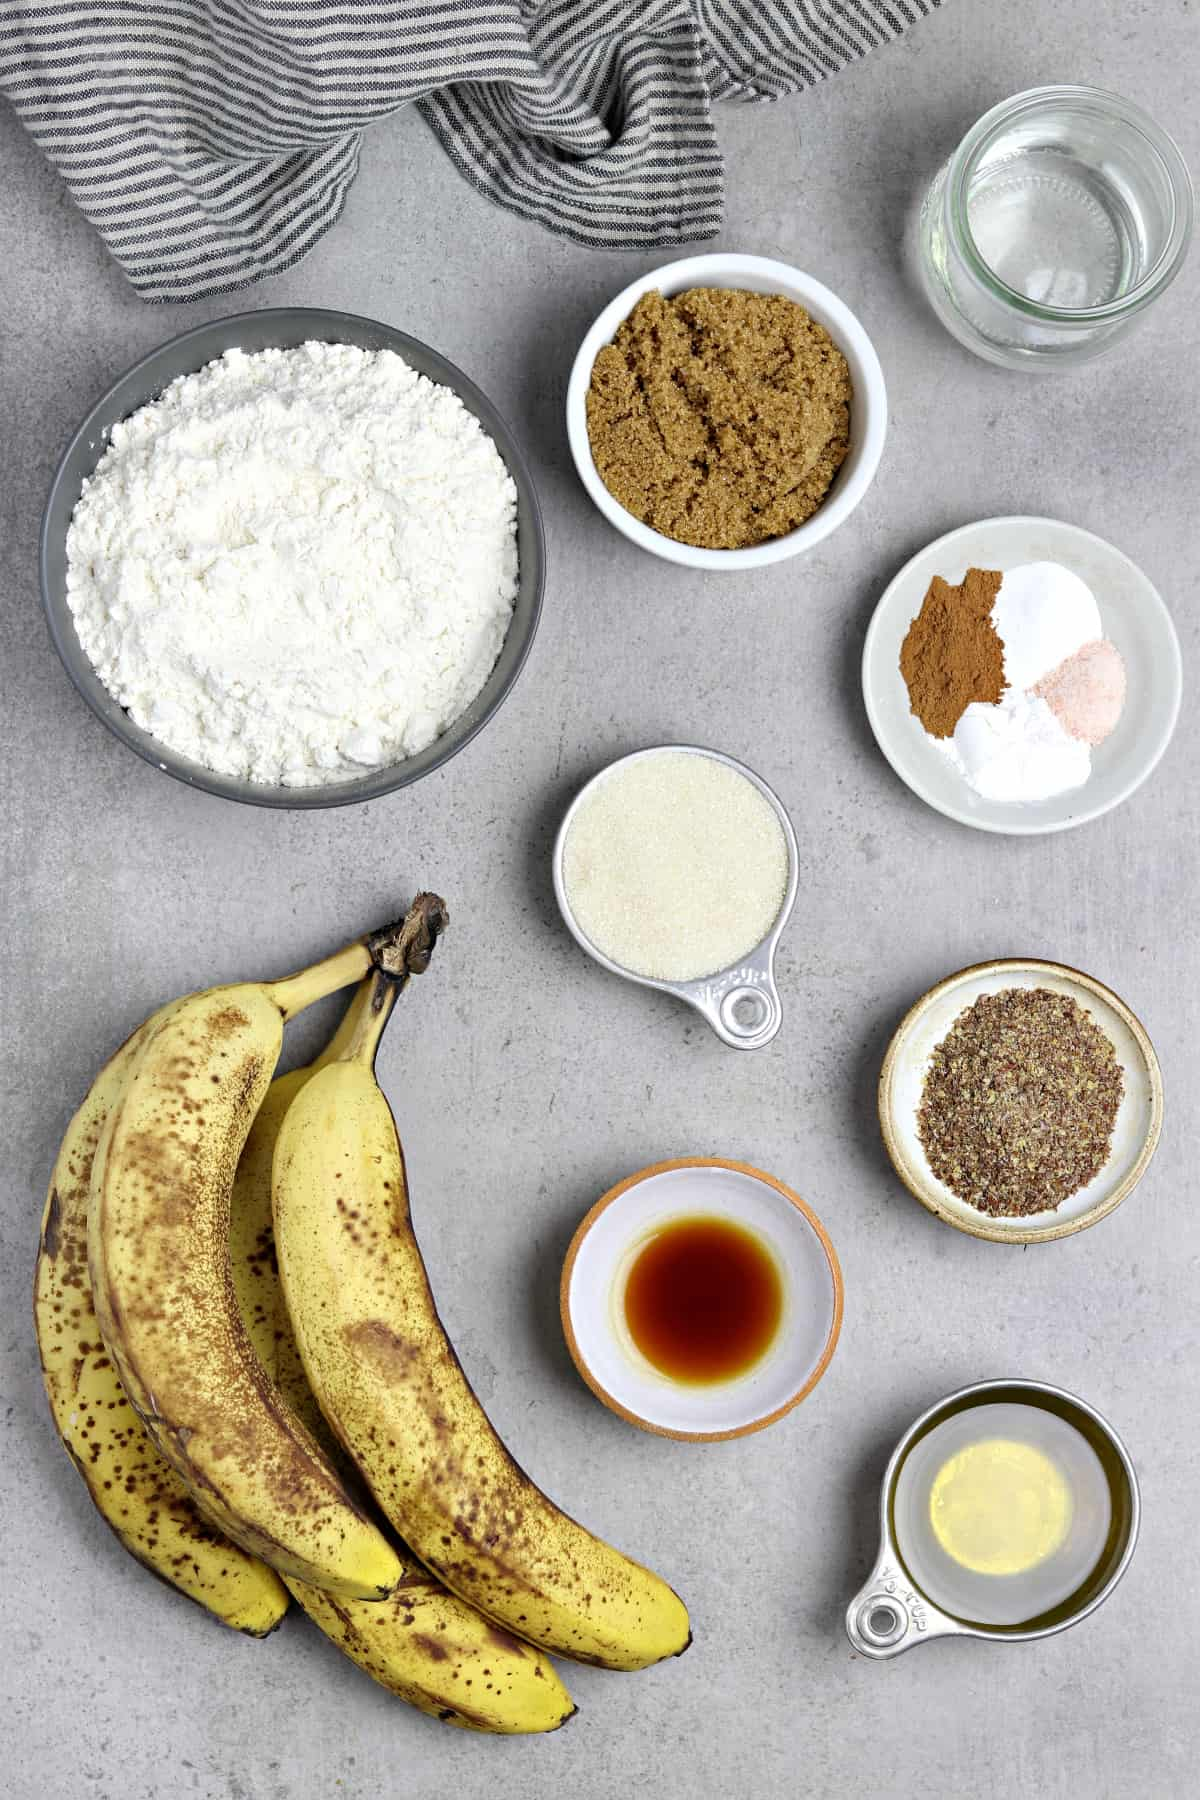 Ingredients to make banana bread on a table top.